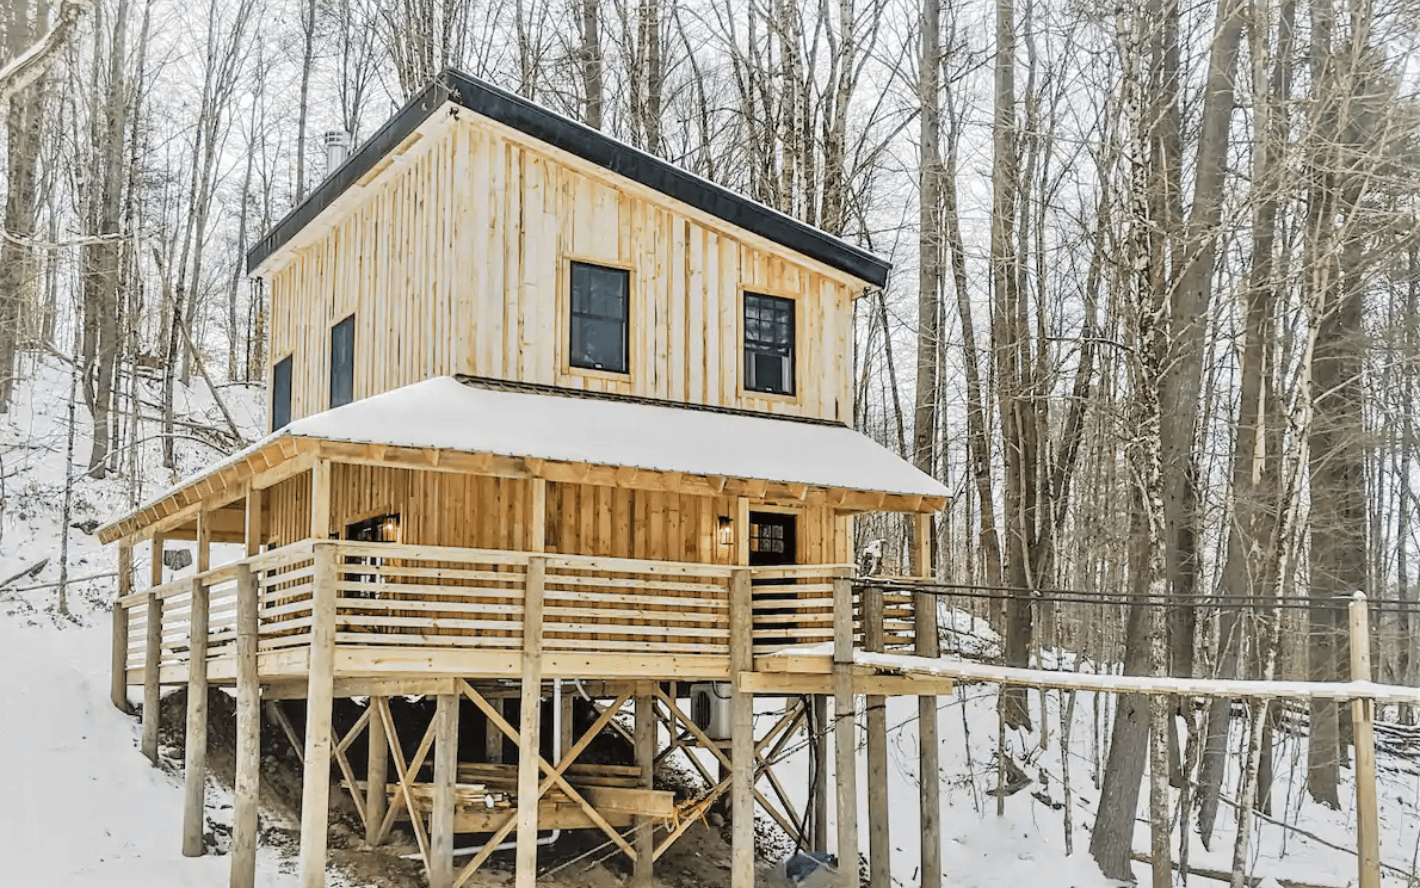 Unique Treehouse Airbnb in New York at Evergreen palace in Adirondacks